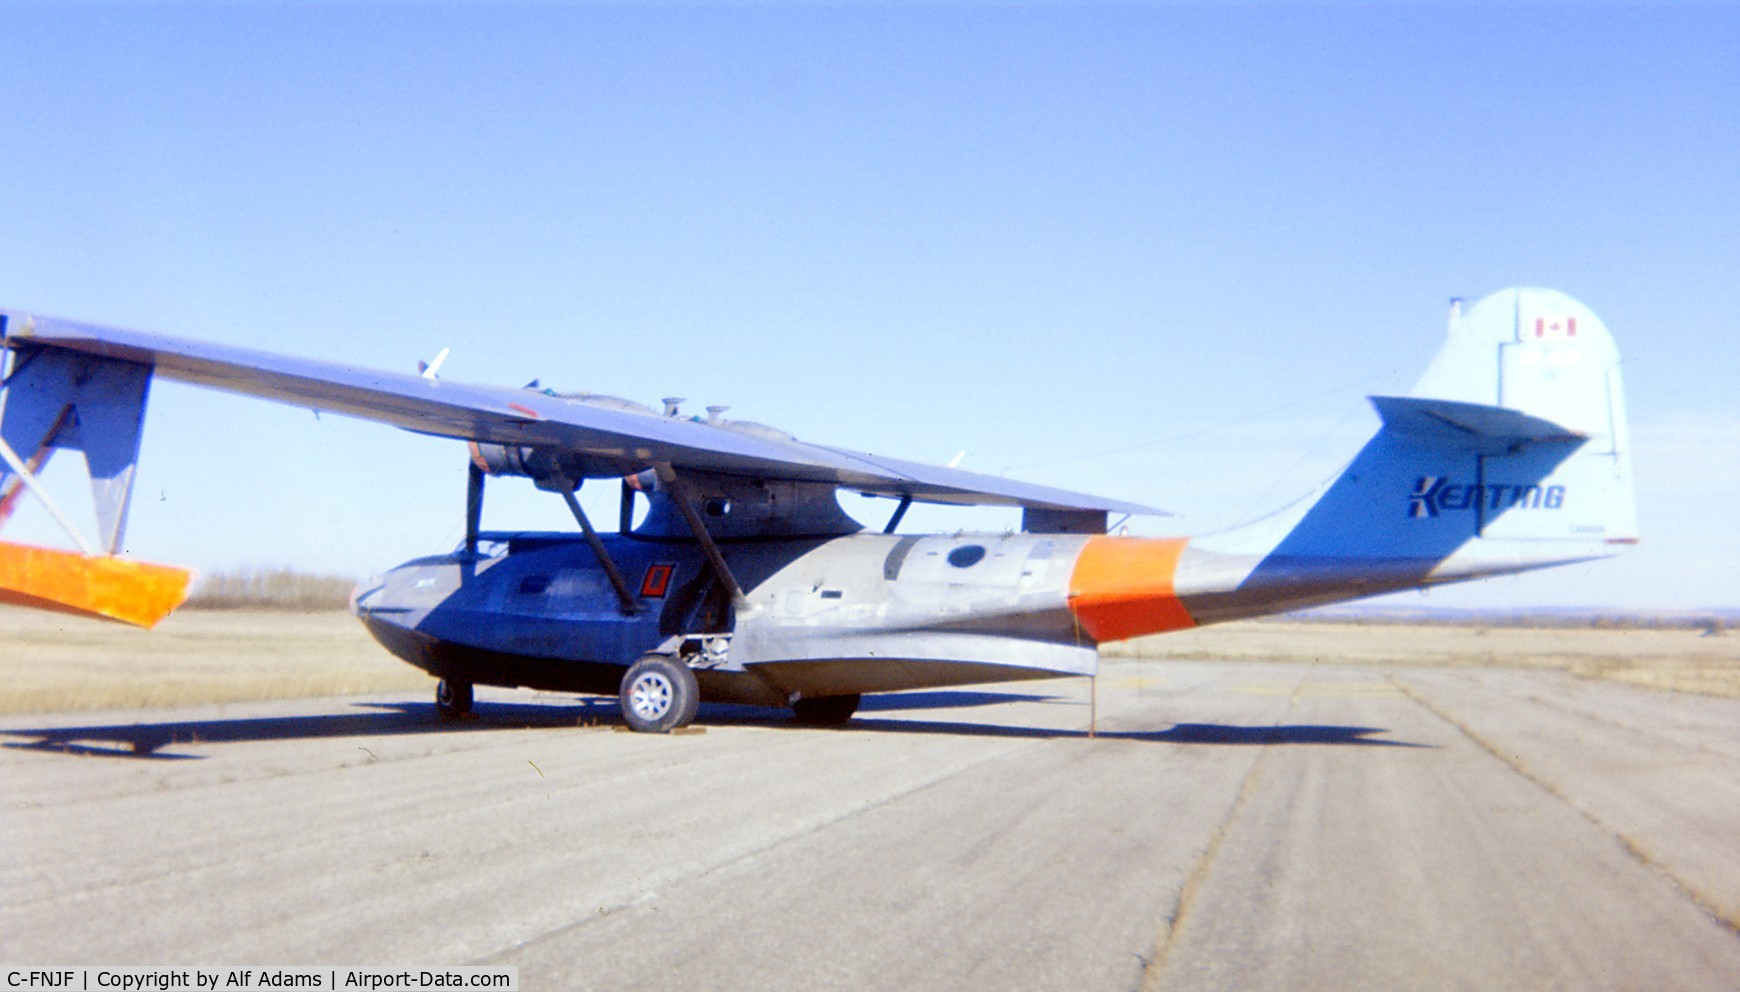 Aircraft C Fnjf 1944 Consolidated Canadian Vickers Pbv 1a Canso